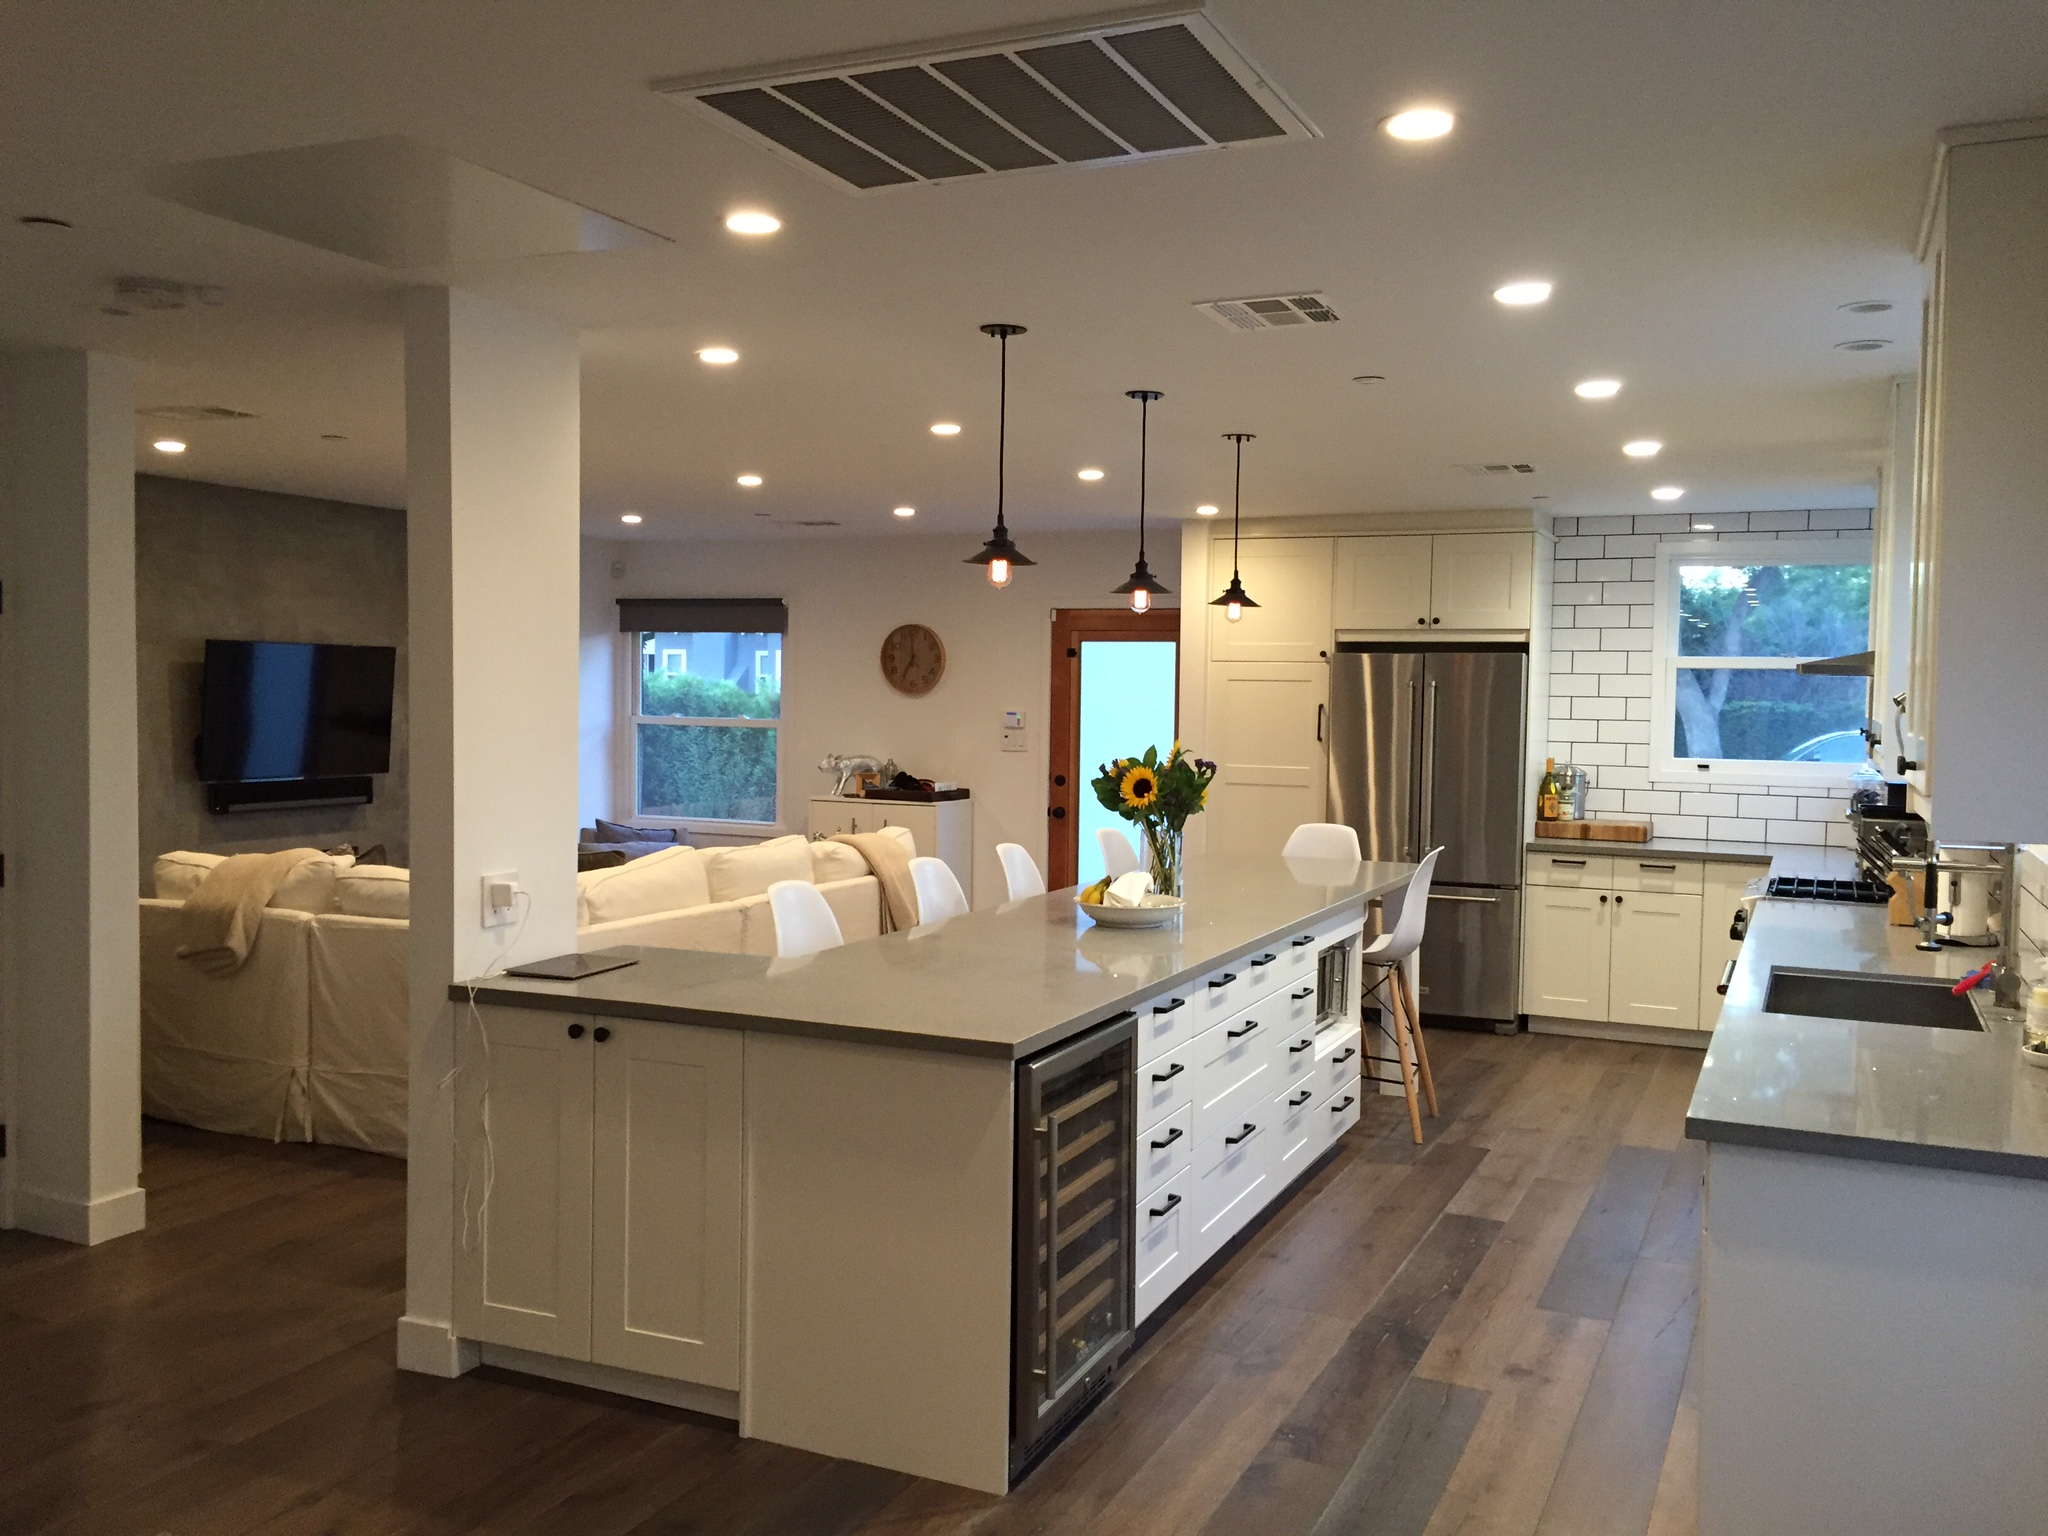 5 kitchen remodeling costs every homeowner needs to know - modern